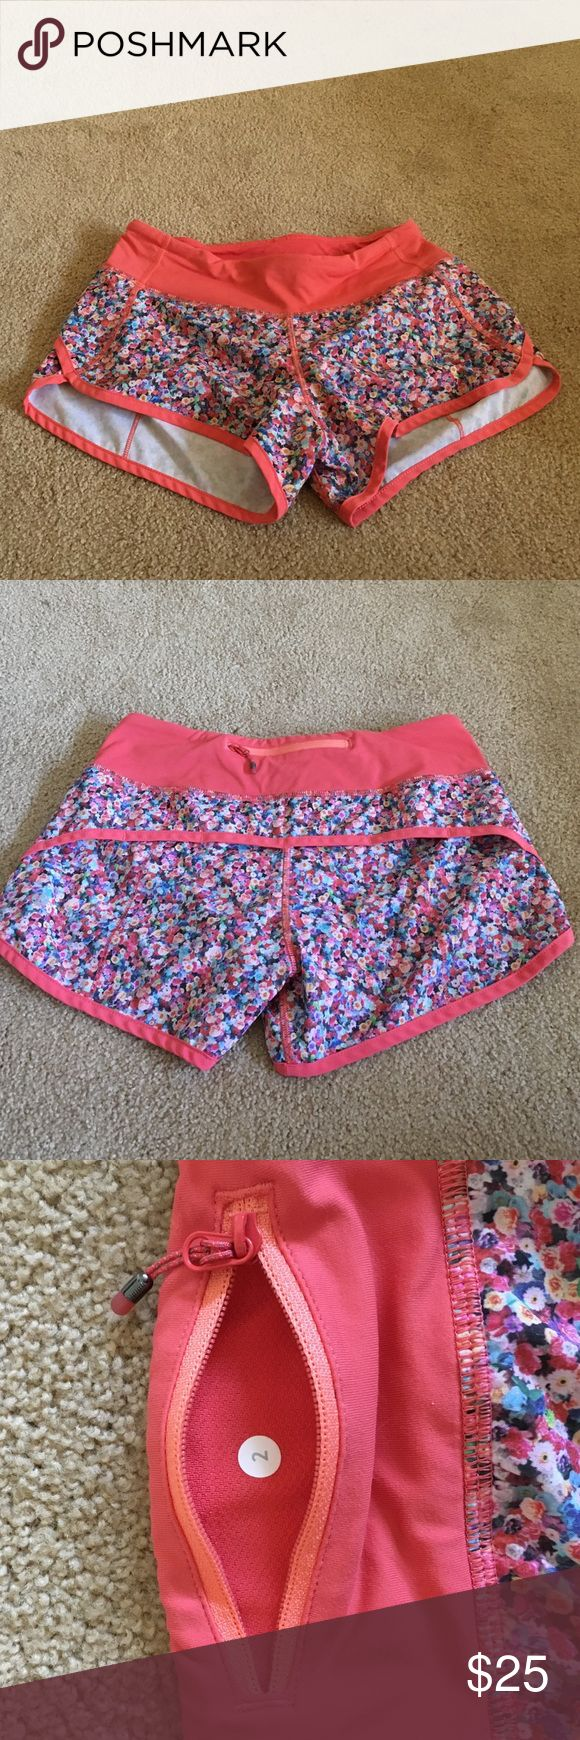 Lululemon Speed Shorts Floral Lululemon speed shorts. Like new! They're too small for me, so my loss is your gain! lululemon athletica Shorts